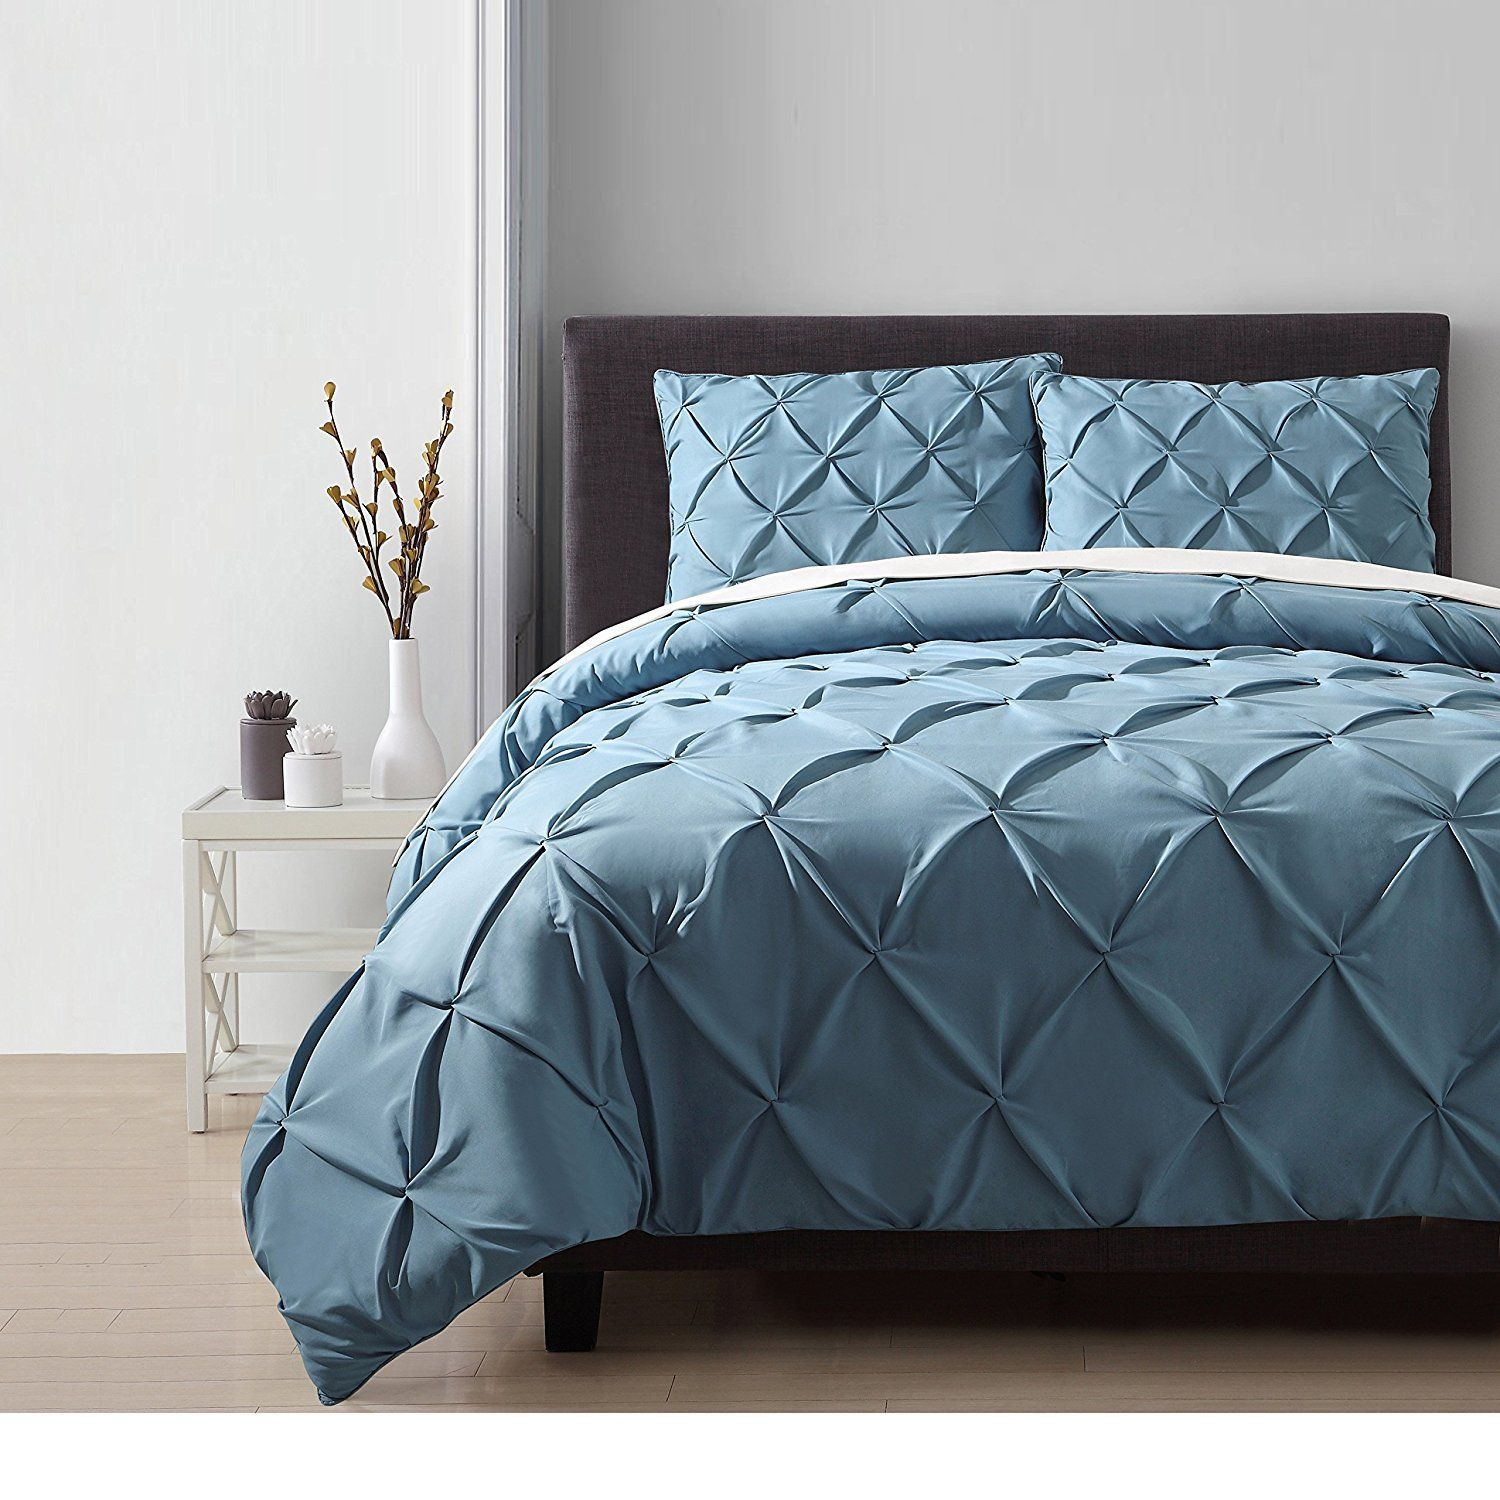 Queen Blue Pinched Pleat forter Set Royal Pretty Beddind